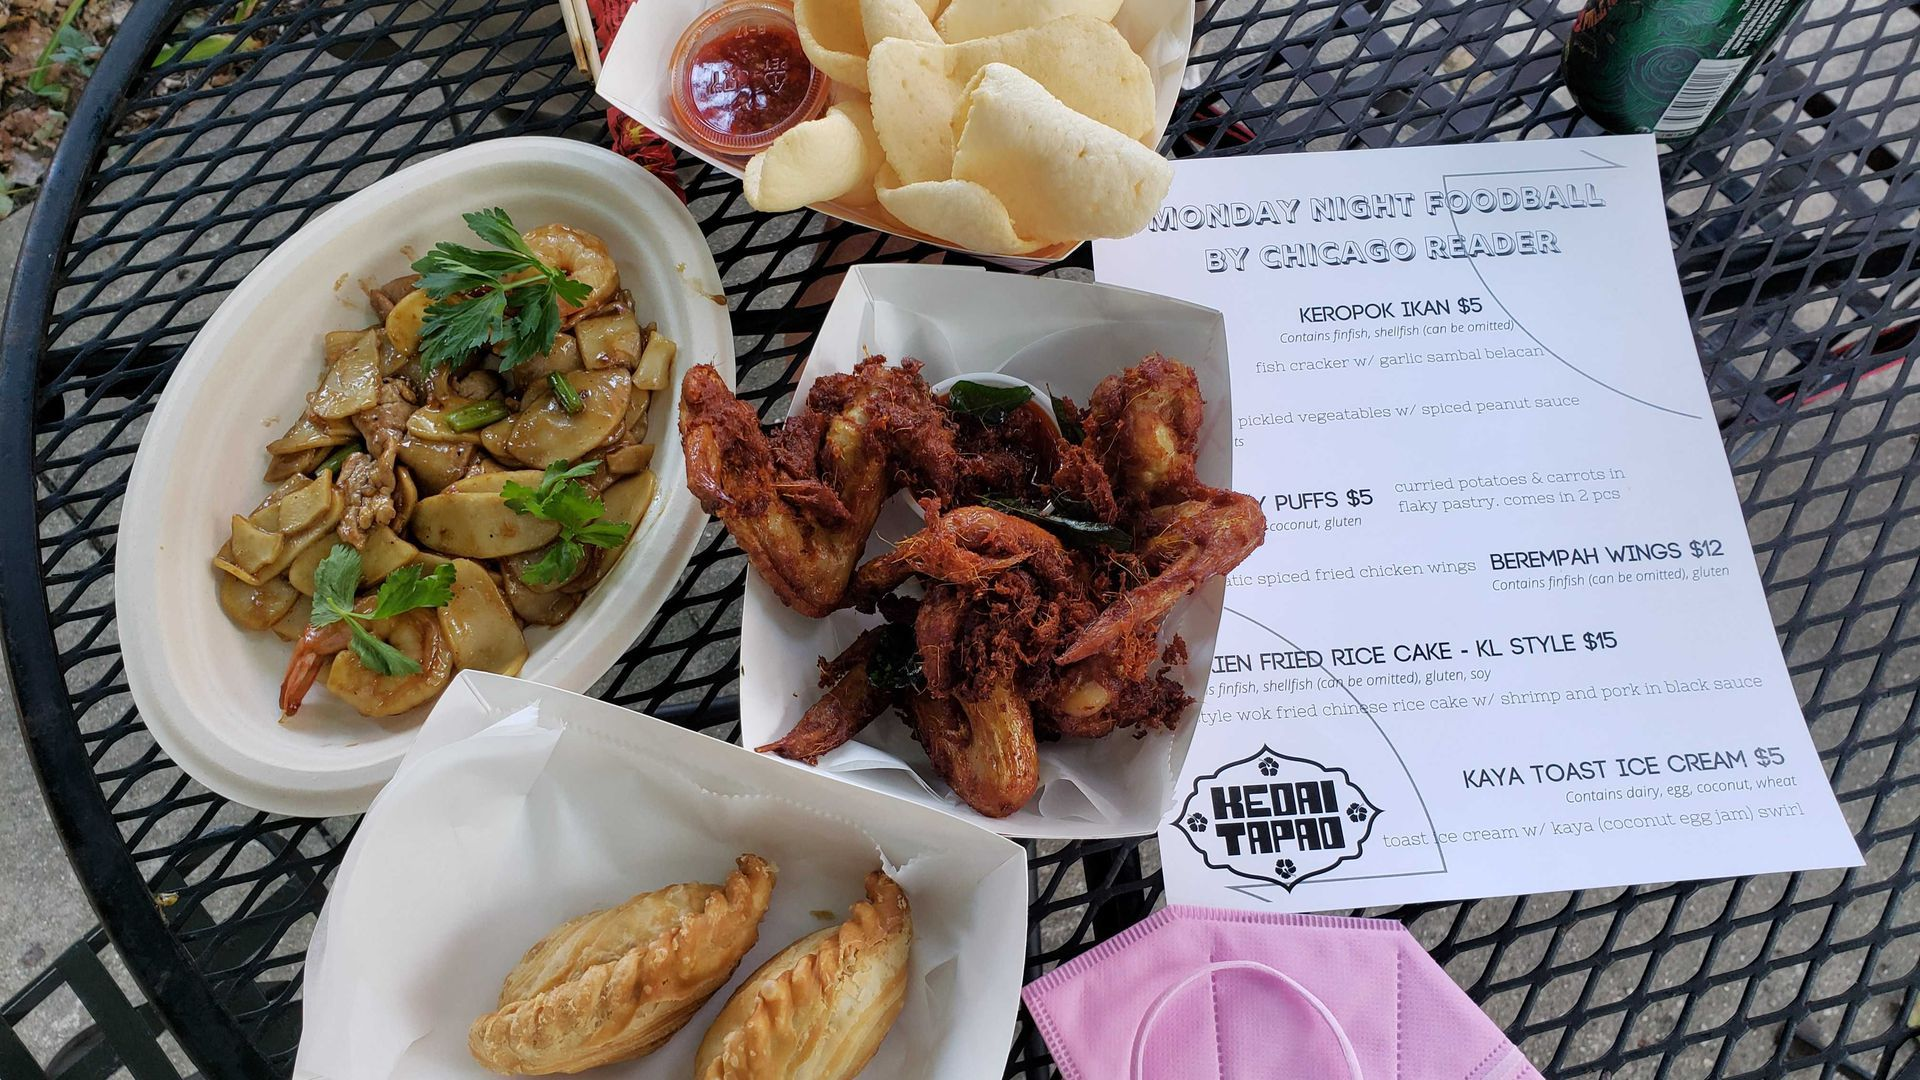 An assortment of food including Malaysian fish crackers, aromatic chicken wings, curry puffs and Hokkien rice cakes on a table.